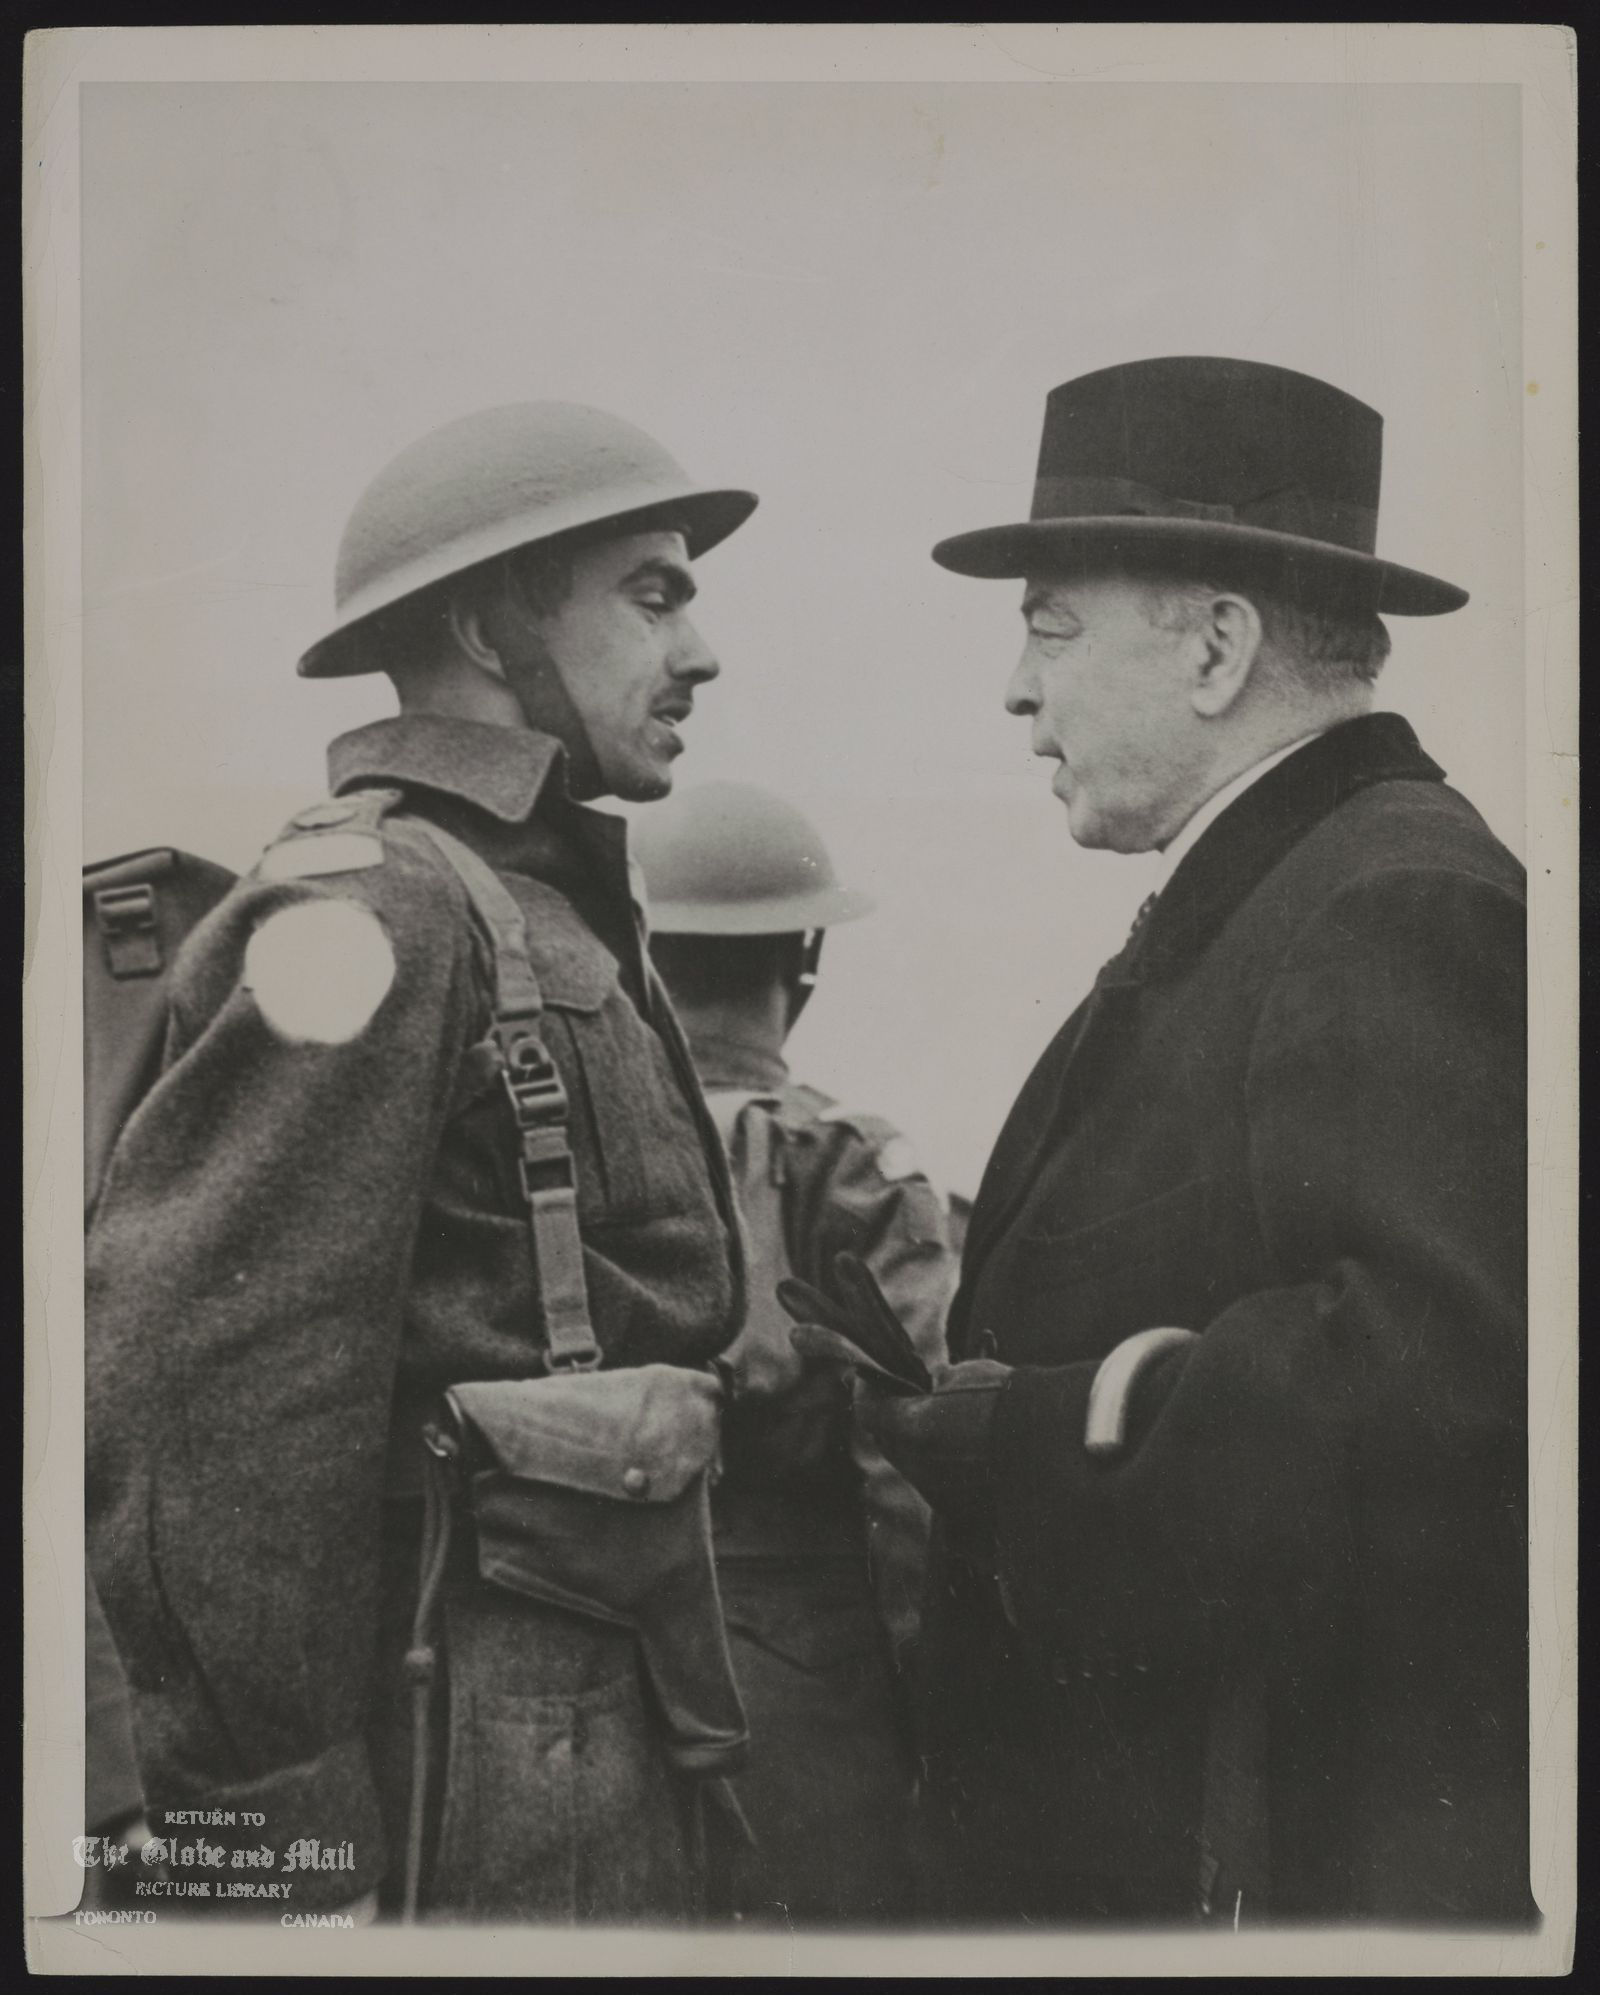 MACKENZIE KING VISITS CANADIAN TROOPS PRIME MINISTER MACKENZIE KING OF CANADA STOPS TO SPEAK WITH CAPT. F. MOUSSEAU, OF HULL, QUEBEC, IN HIS REVIEW OF CANADIAN TROOPS IN ENGLAND AFTER THE CONCLUSION OF HIS PARTICIPATION IN THE EMPIRE PREMIERS CONFERENCE IN LONDON. THIS IS AN OFFICIAL CANADIAN MILITARY PHOTO. ASSOCIATED PRESS PHOTO JC 11.41 PEW 5/23/44 LON-PL 6